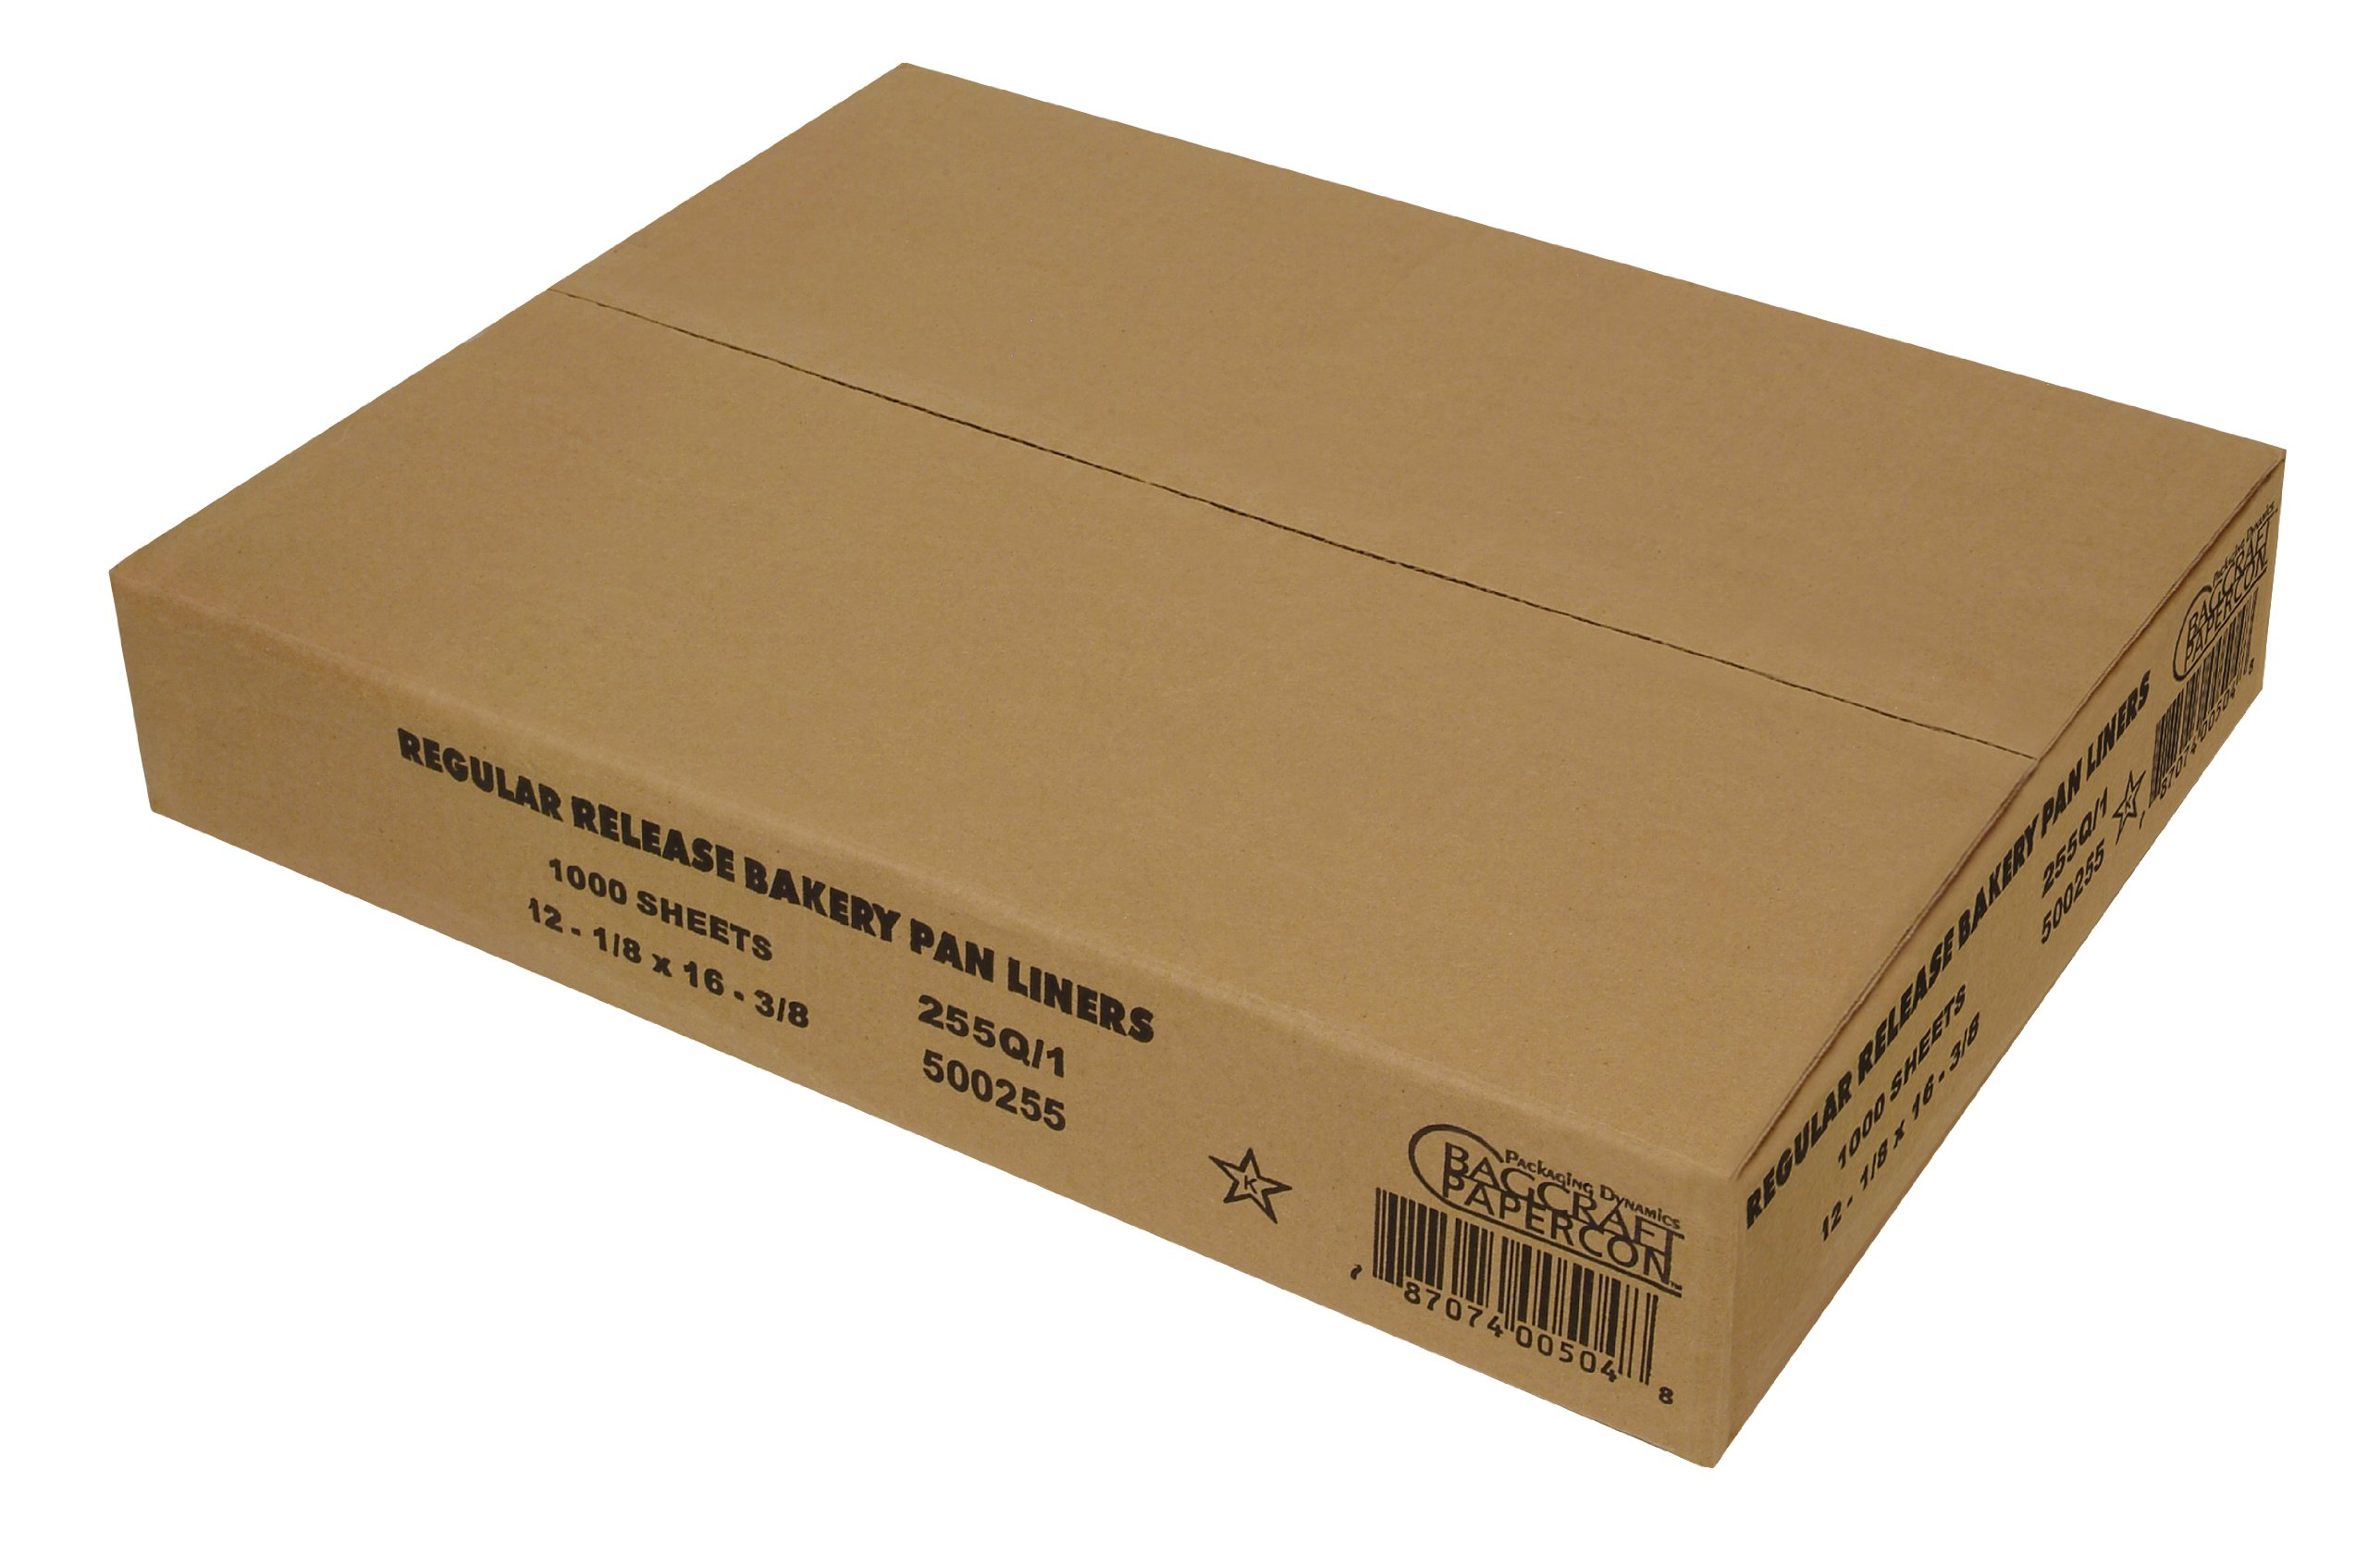 Bagcraft Papercon 500255 Grease Proof Premium Quilon Half Pan Liner with Standard Release, 16-3/8'' Length x 12-1/8'' Width x 12-1/8'' Height (Case of 1000)